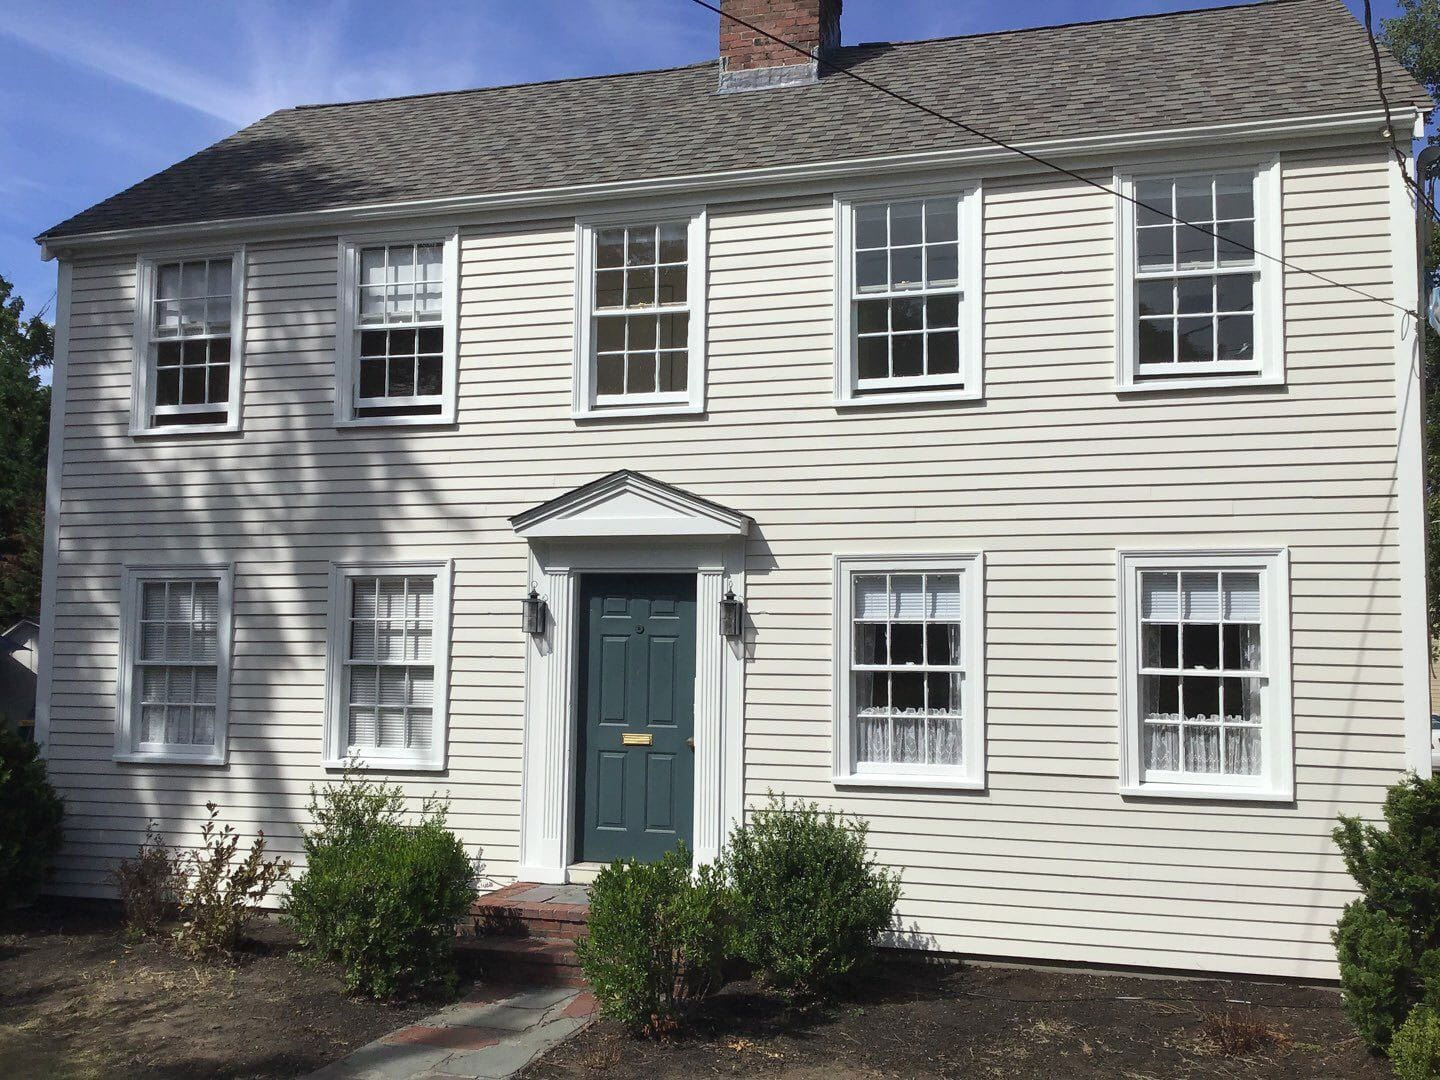 Case Study: A Hingham Historic Home